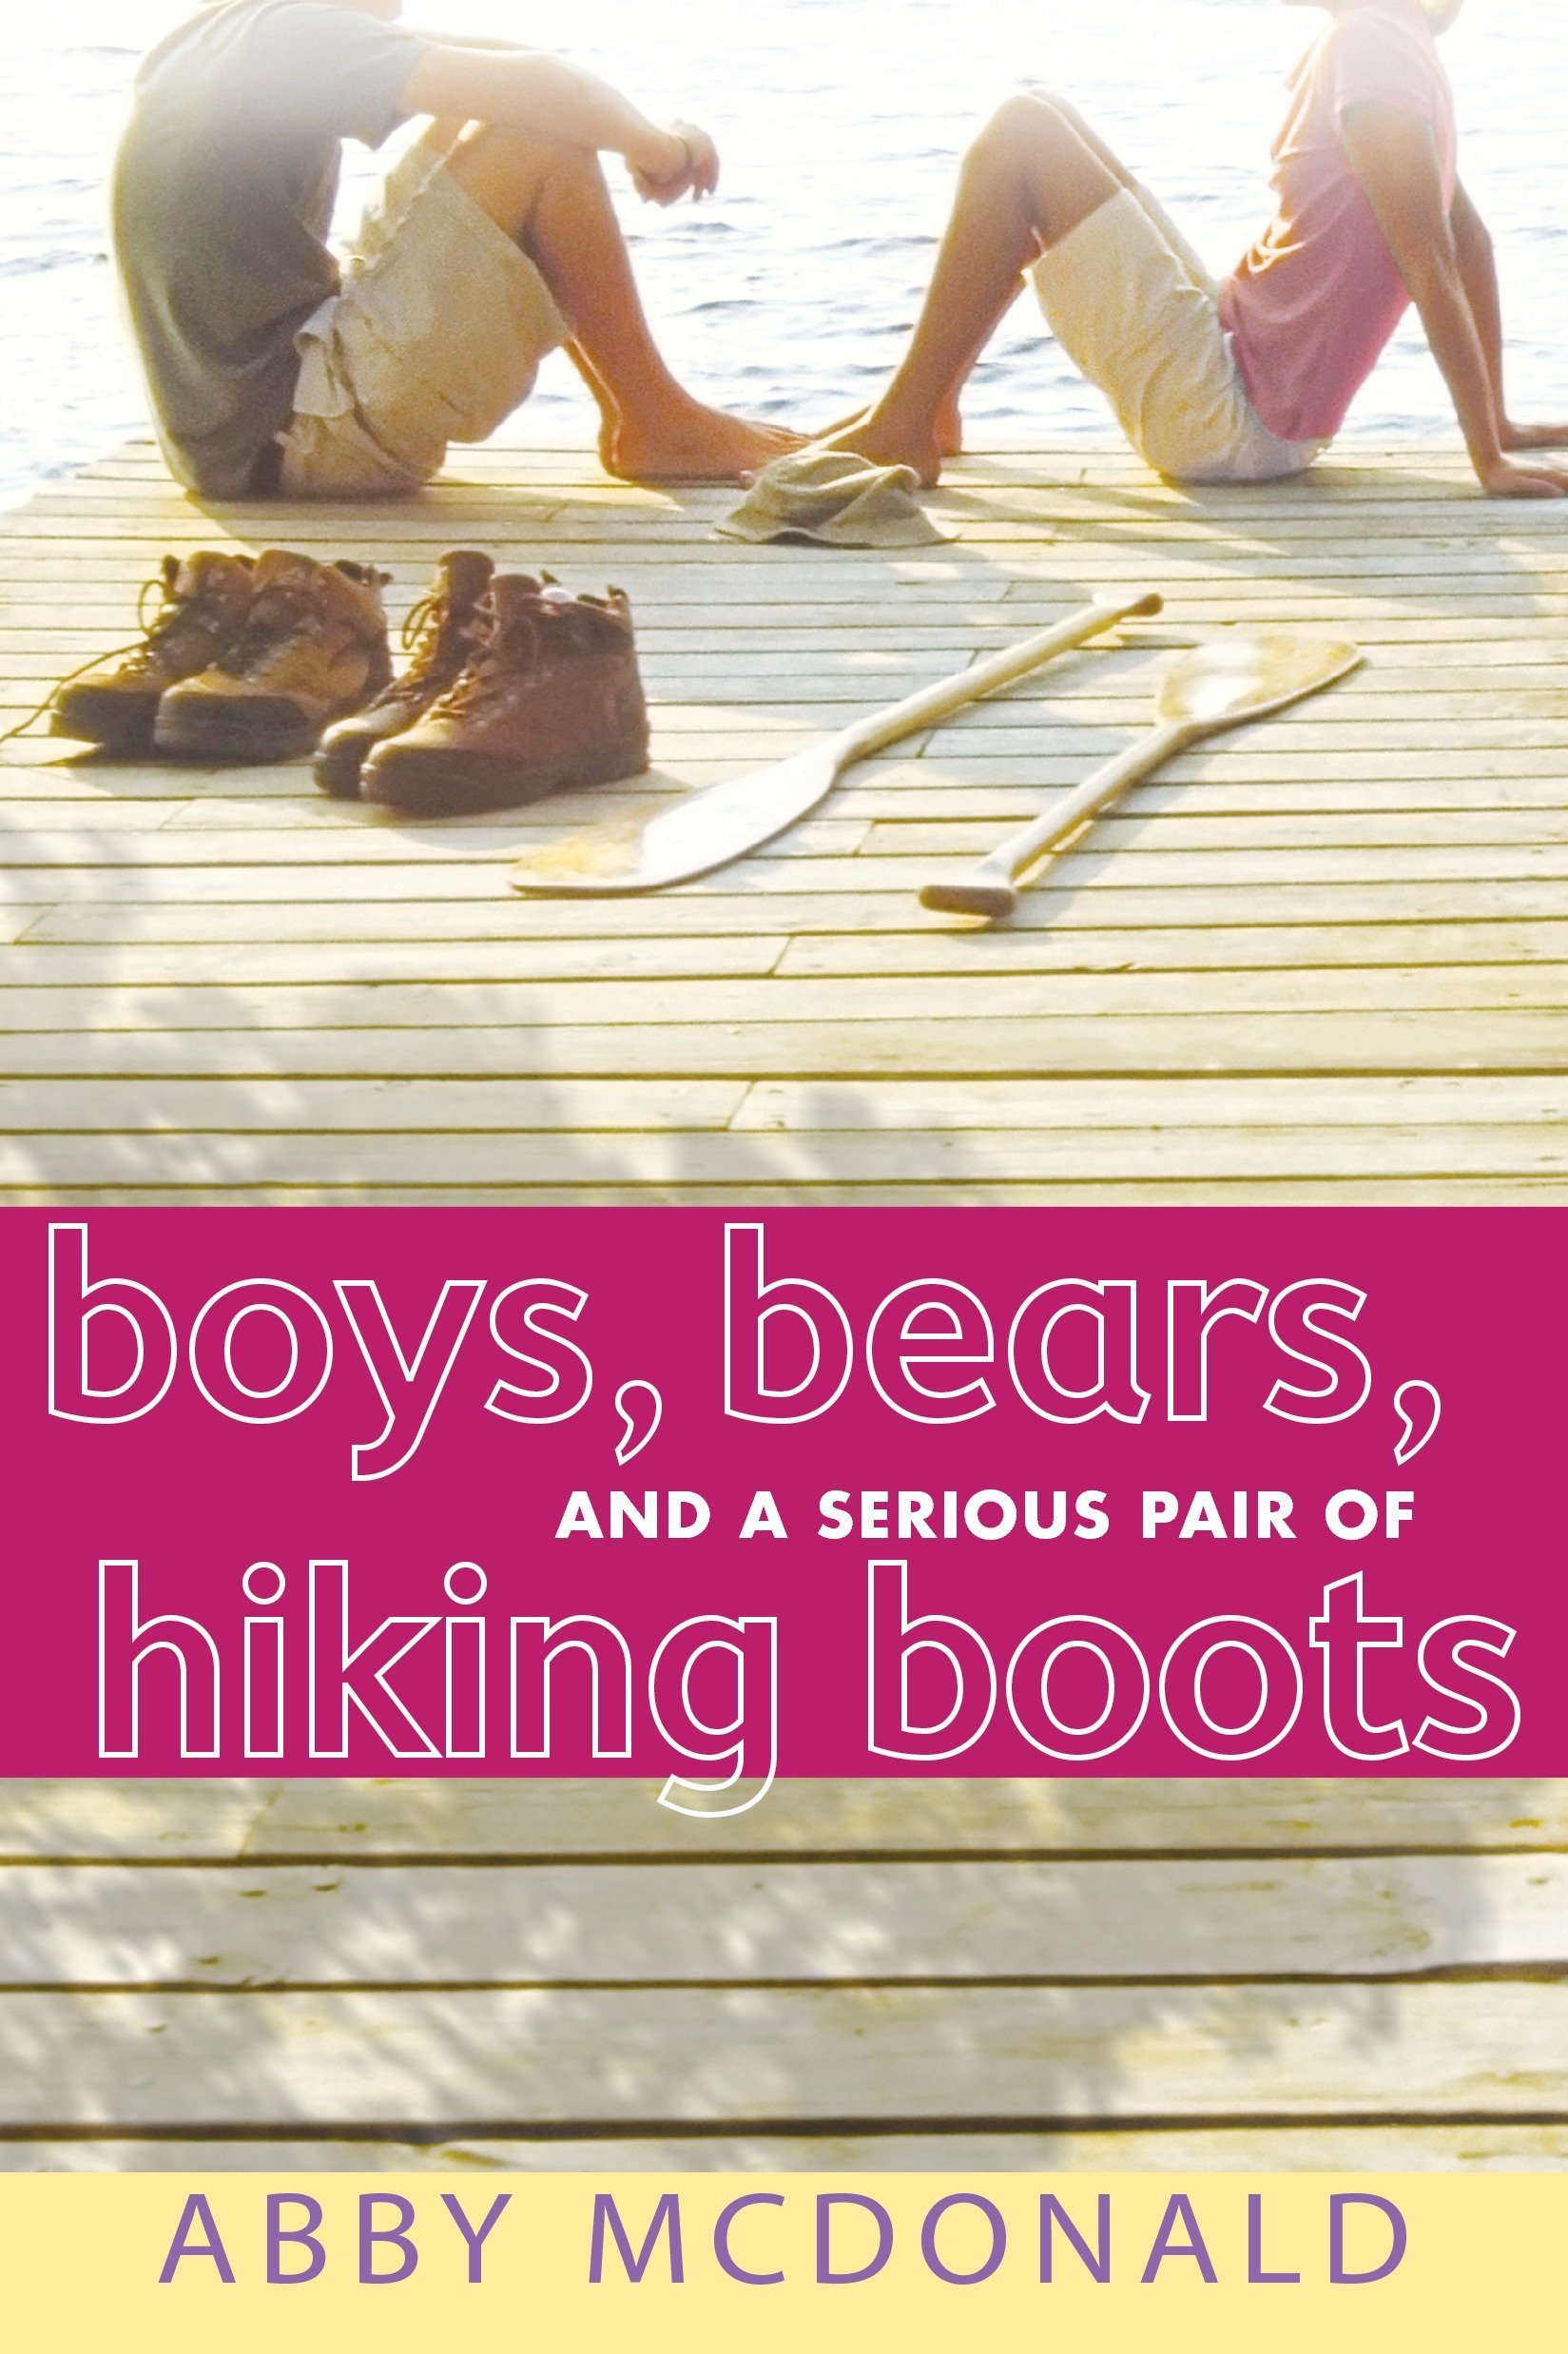 Download Boys, Bears, and a Serious Pair of Hiking Boots ebook